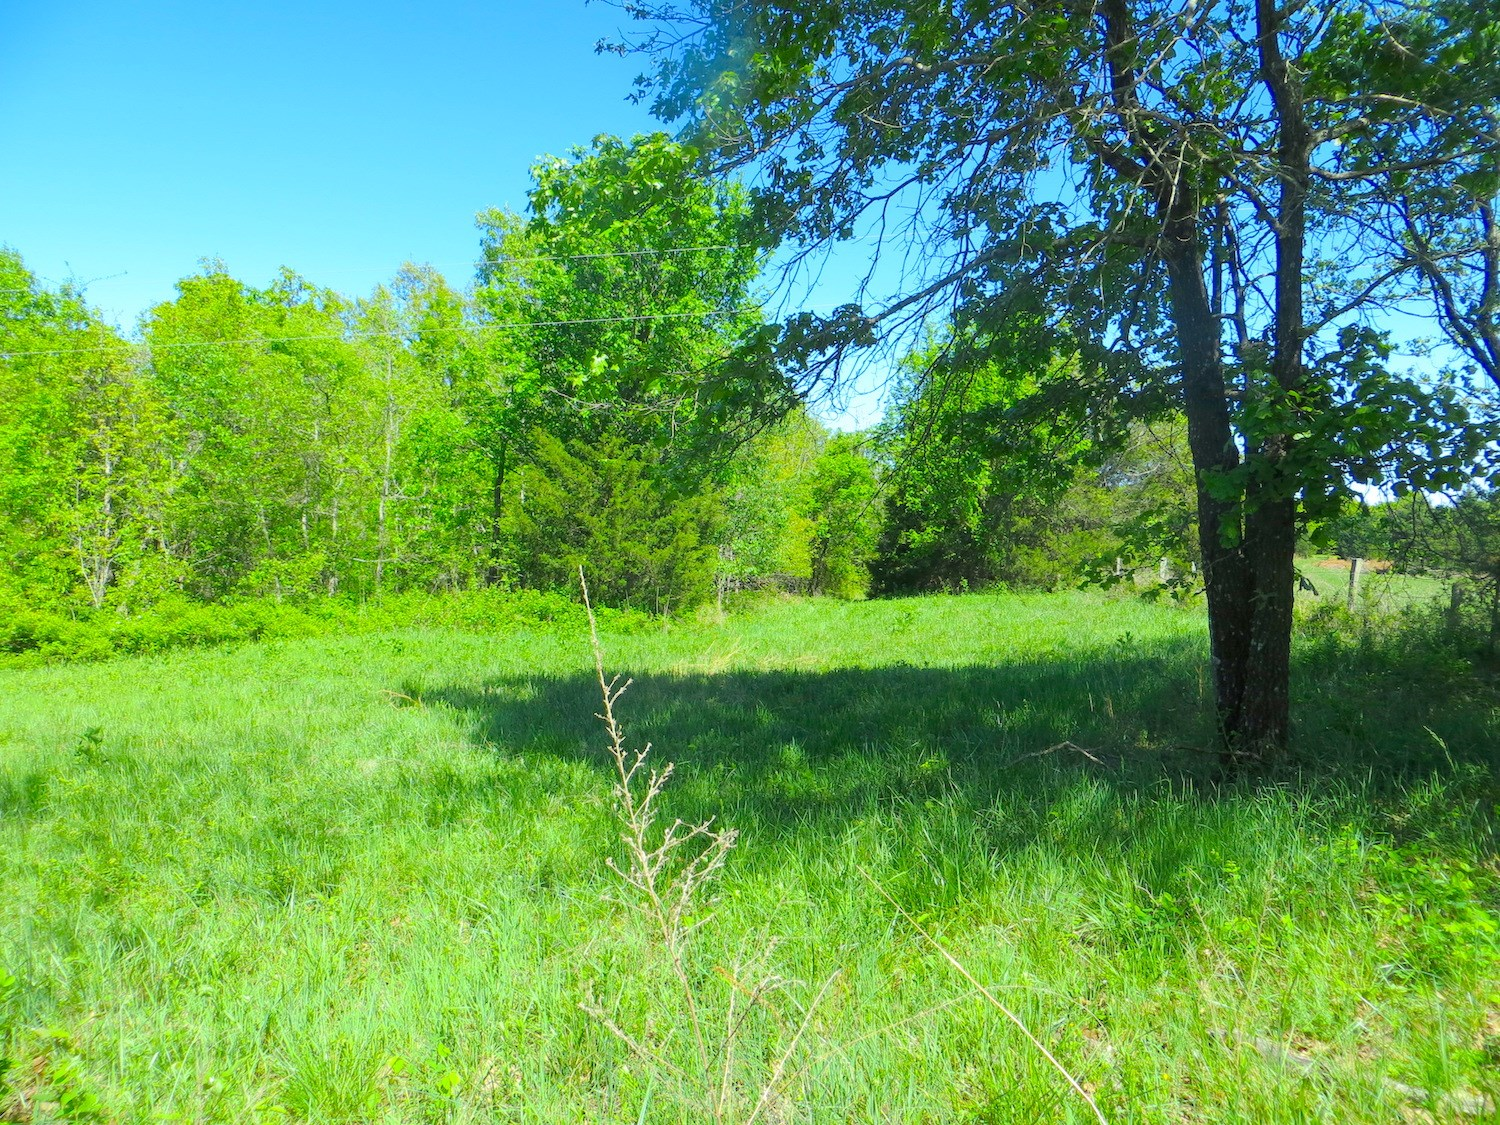 Land For Sale in Salem, Arkansas